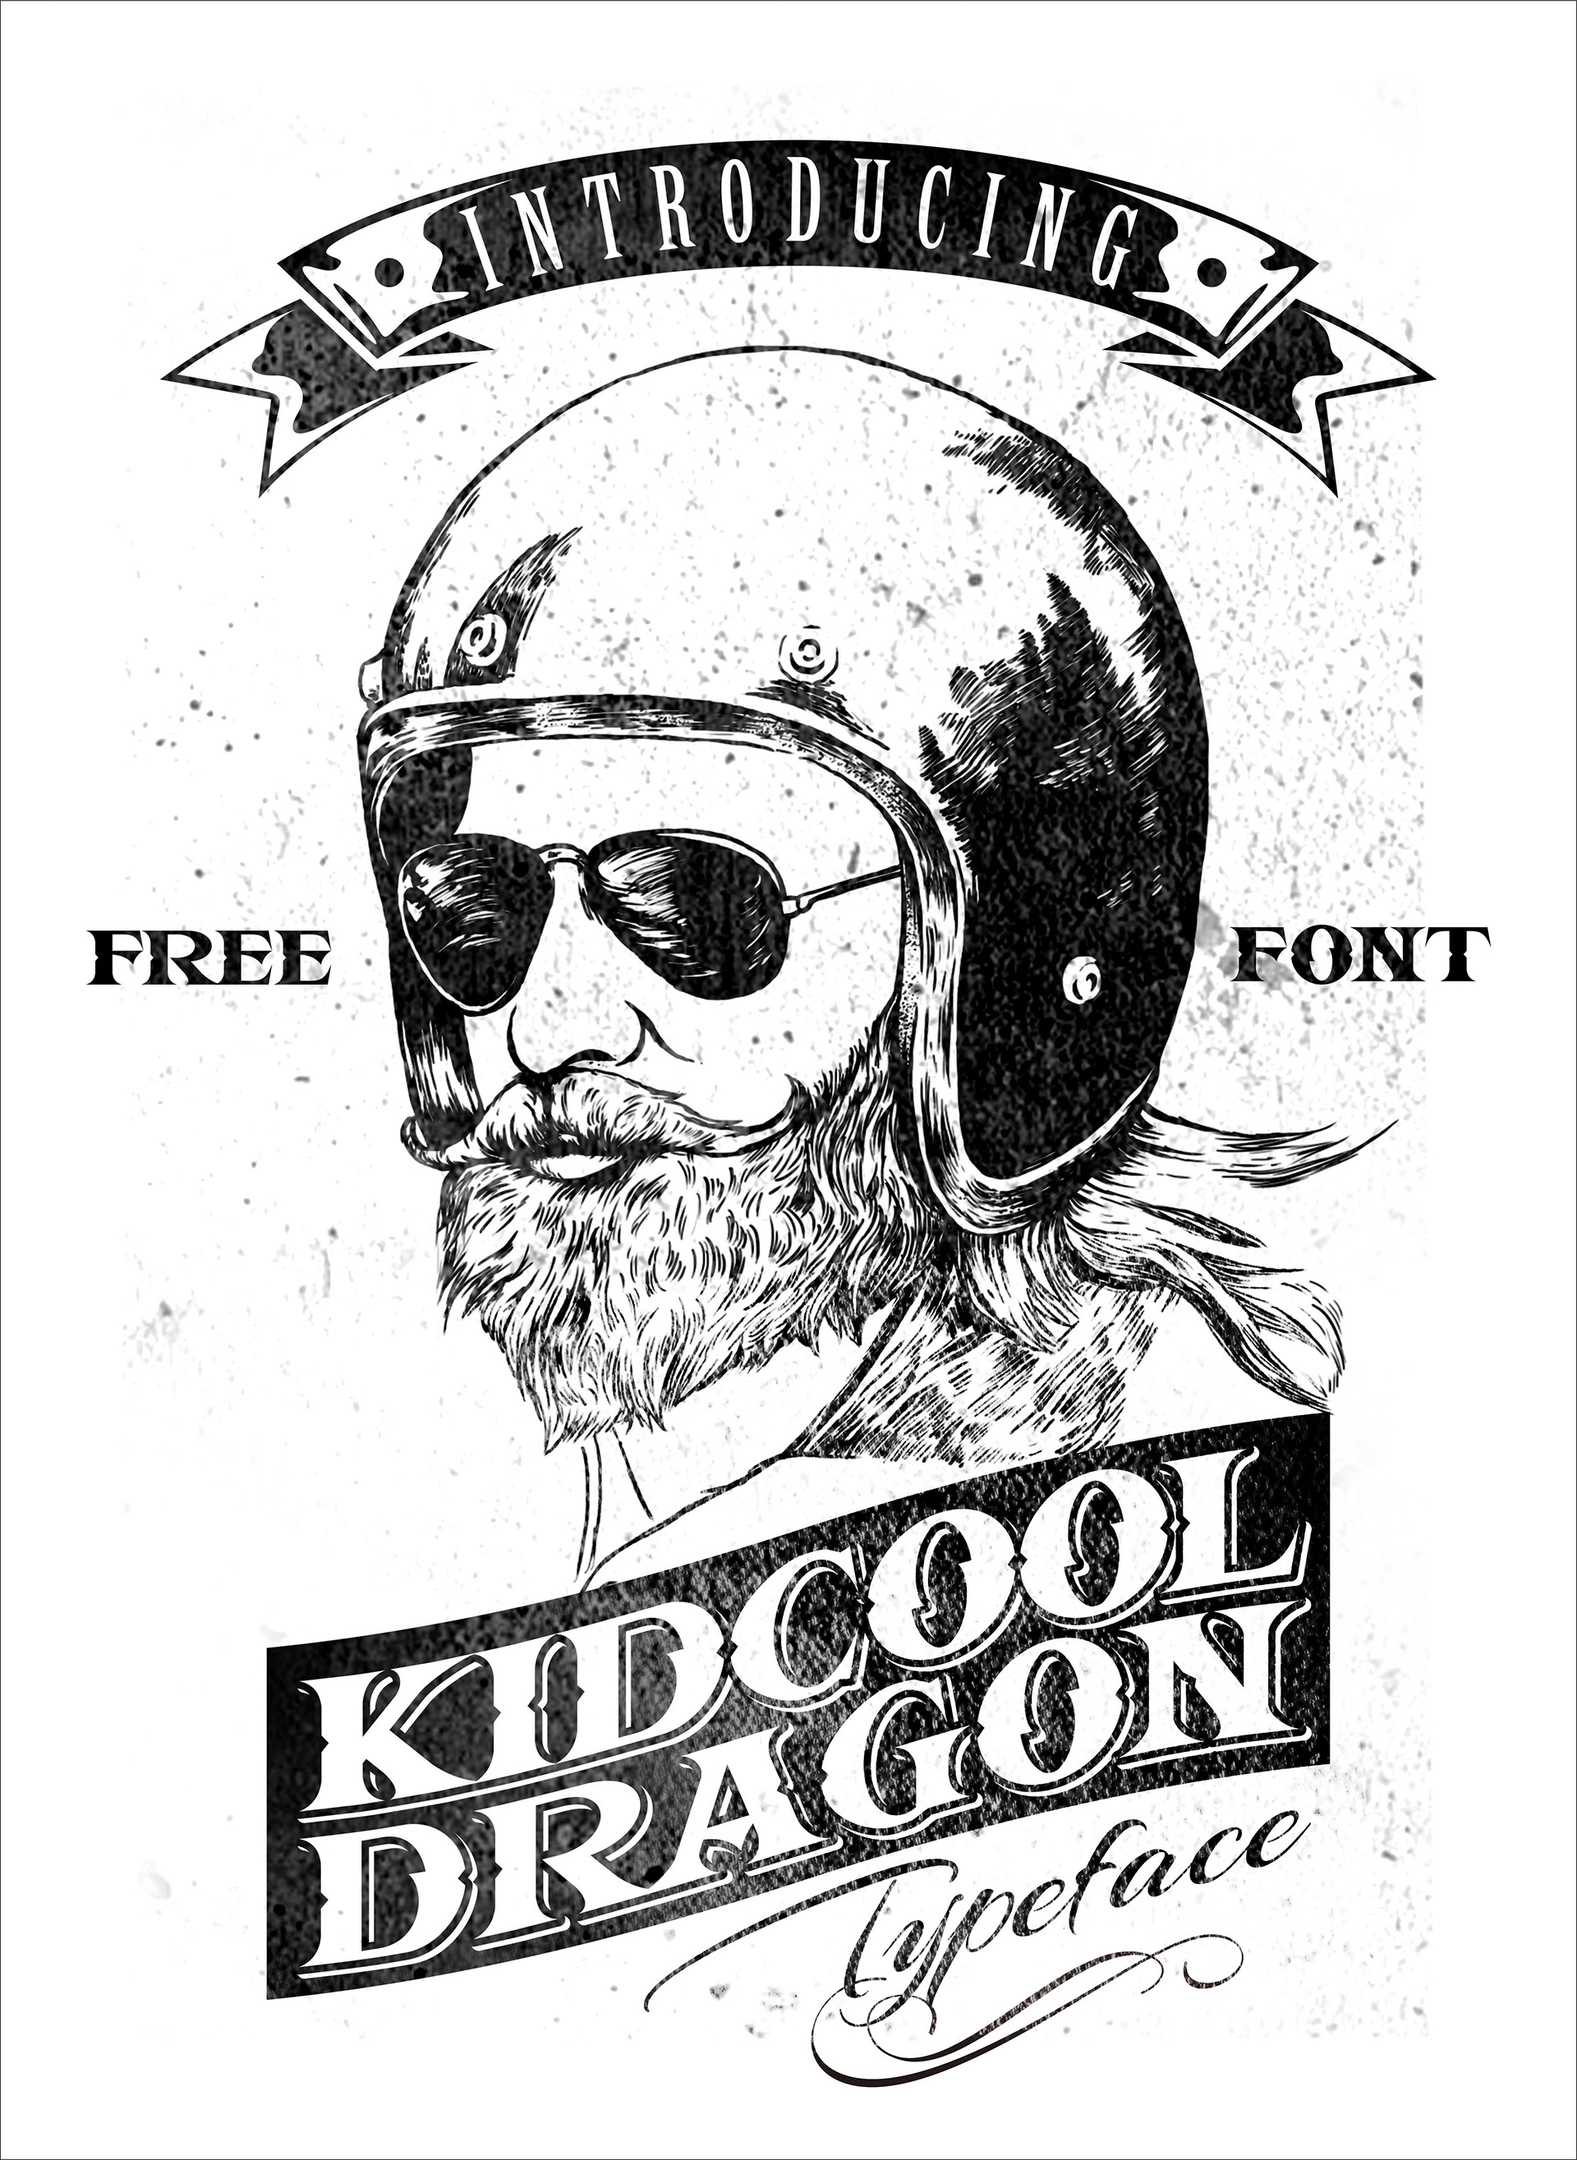 Kidcool Dragon